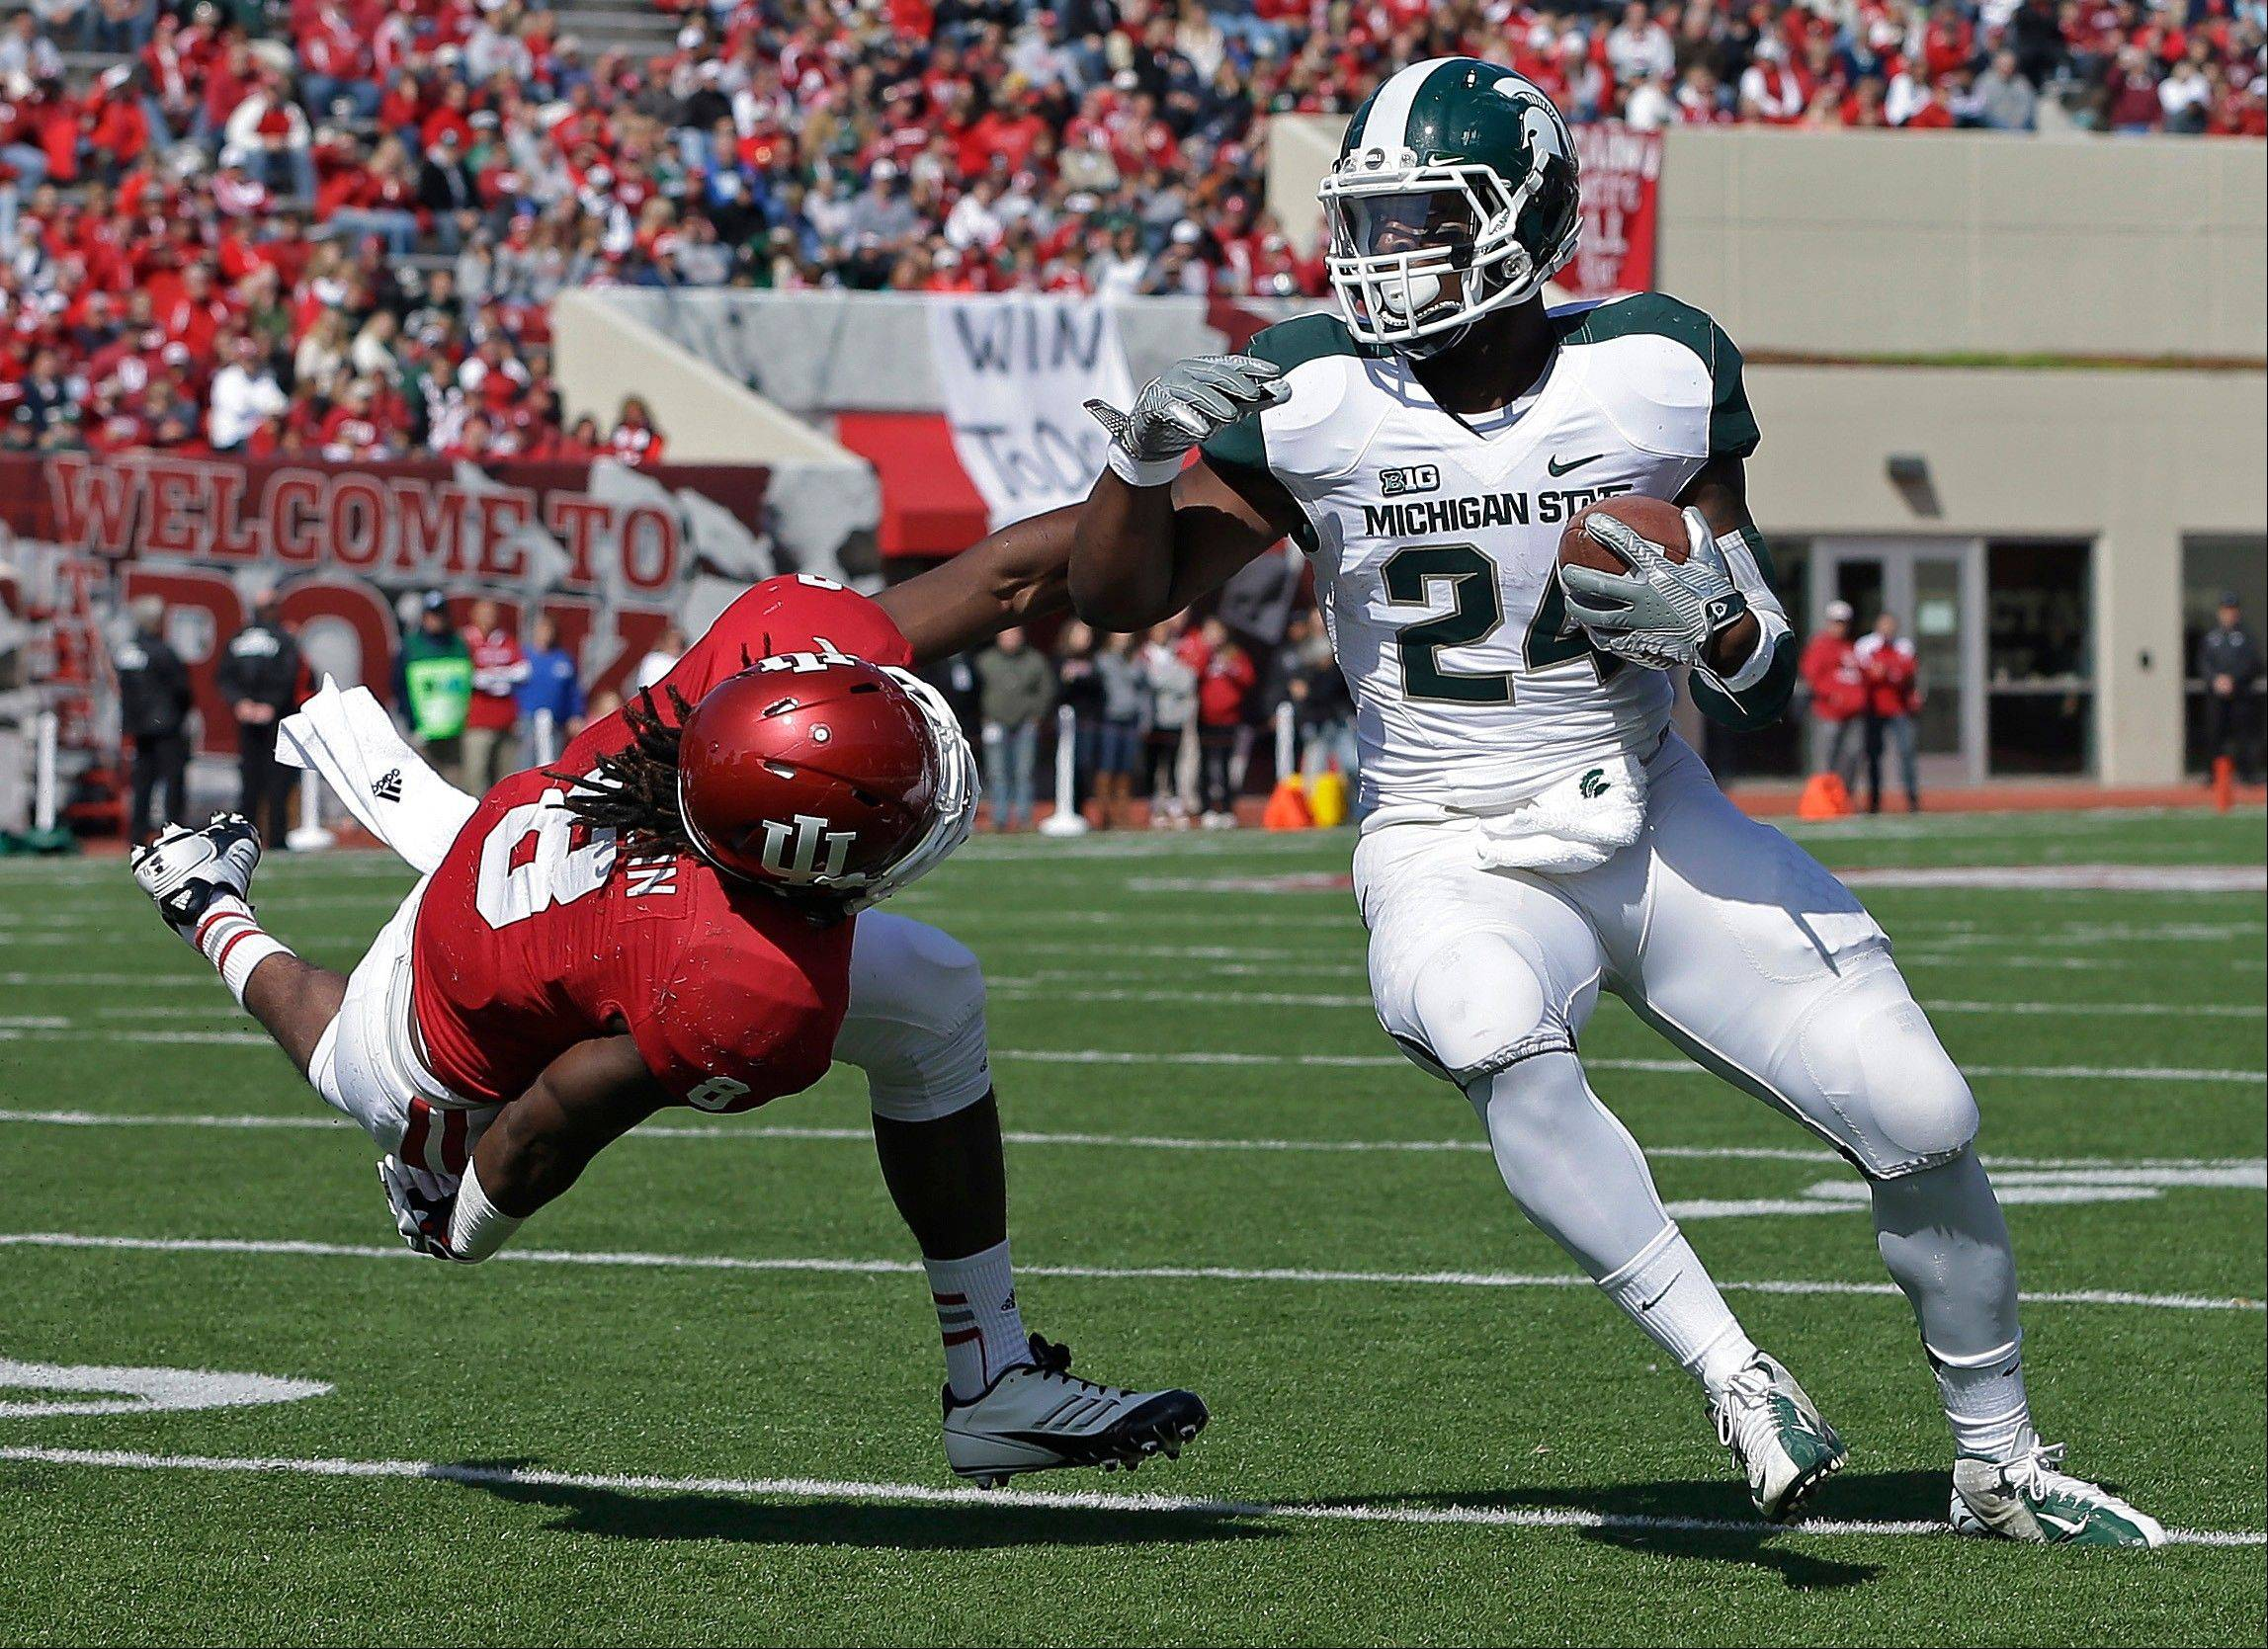 Michigan State running back Le'Veon Bell is tackled by Indiana safety Drew Hardin Saturday during the first half in Bloomington, Ind.